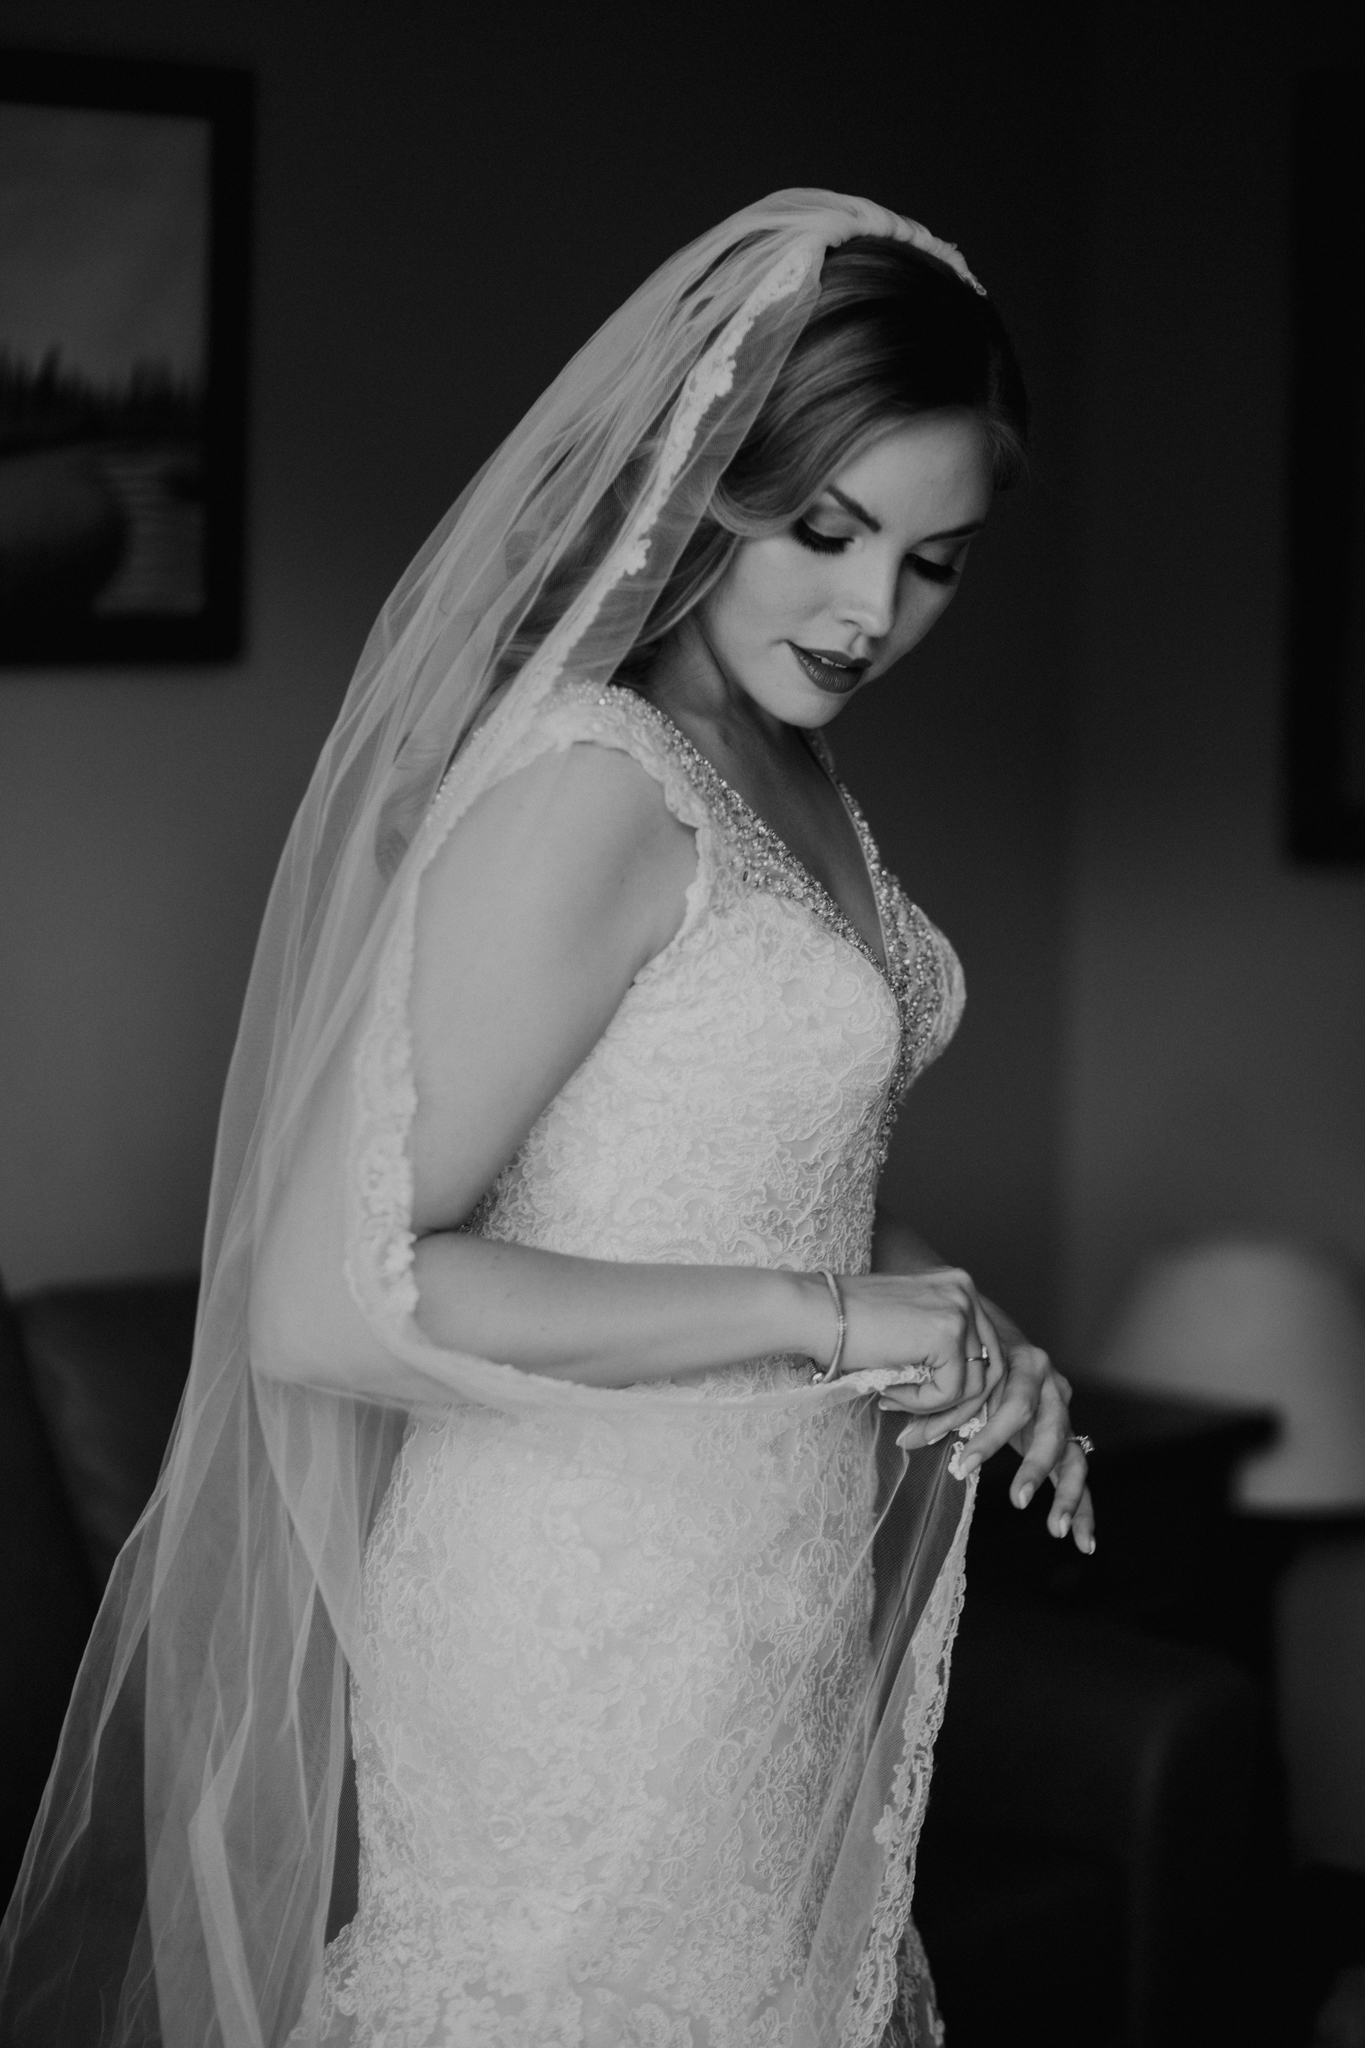 Bride fixing veil candid black and white photograph